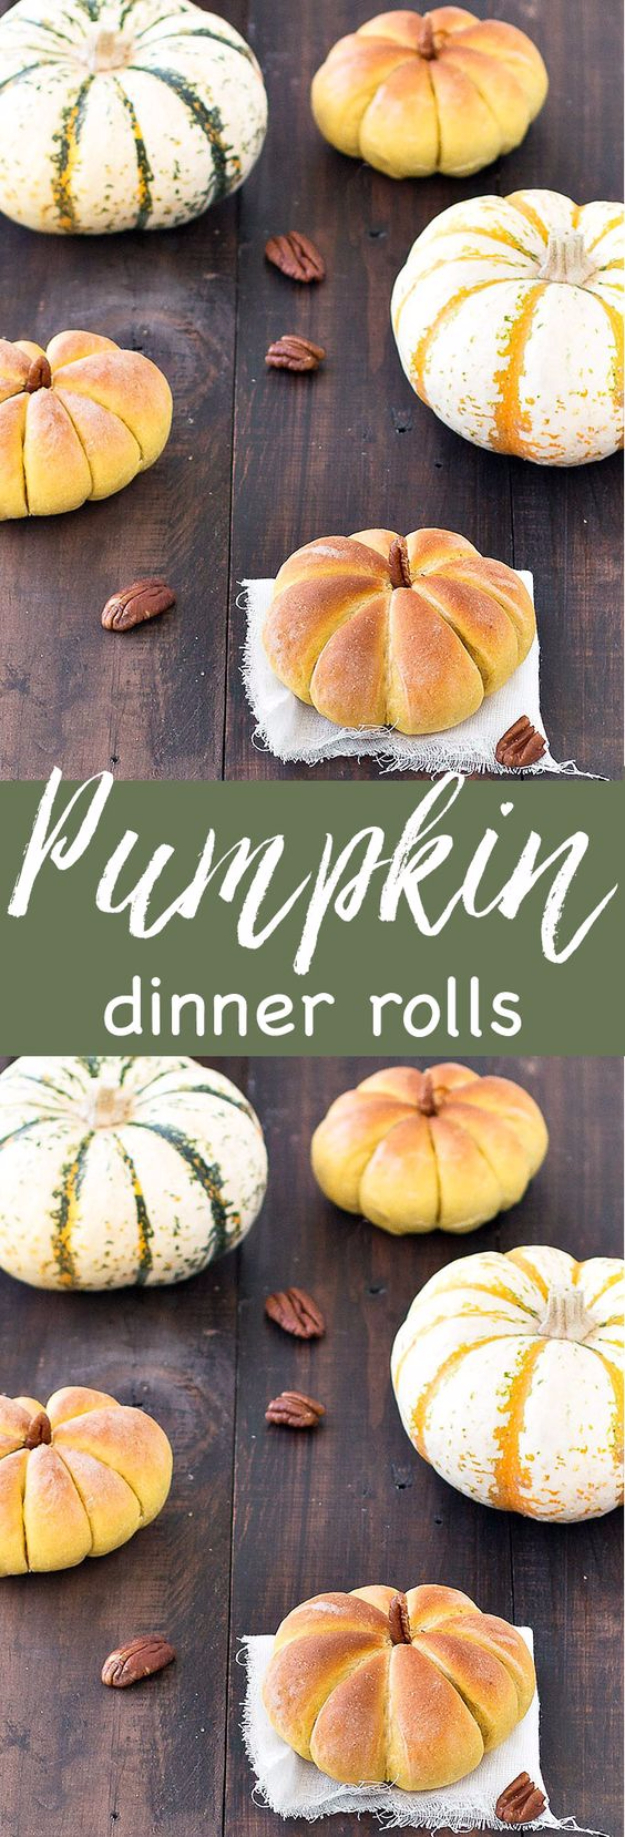 Best Thanksgiving Dinner Recipes - Pumpkin Dinner Rolls - Easy DIY Desserts, Sides, Sauces, Main Courses, Vegetables, Pie and Side Dishes. Simple Gravy, Cranberries, Turkey and Pies With Step by Step Tutorials